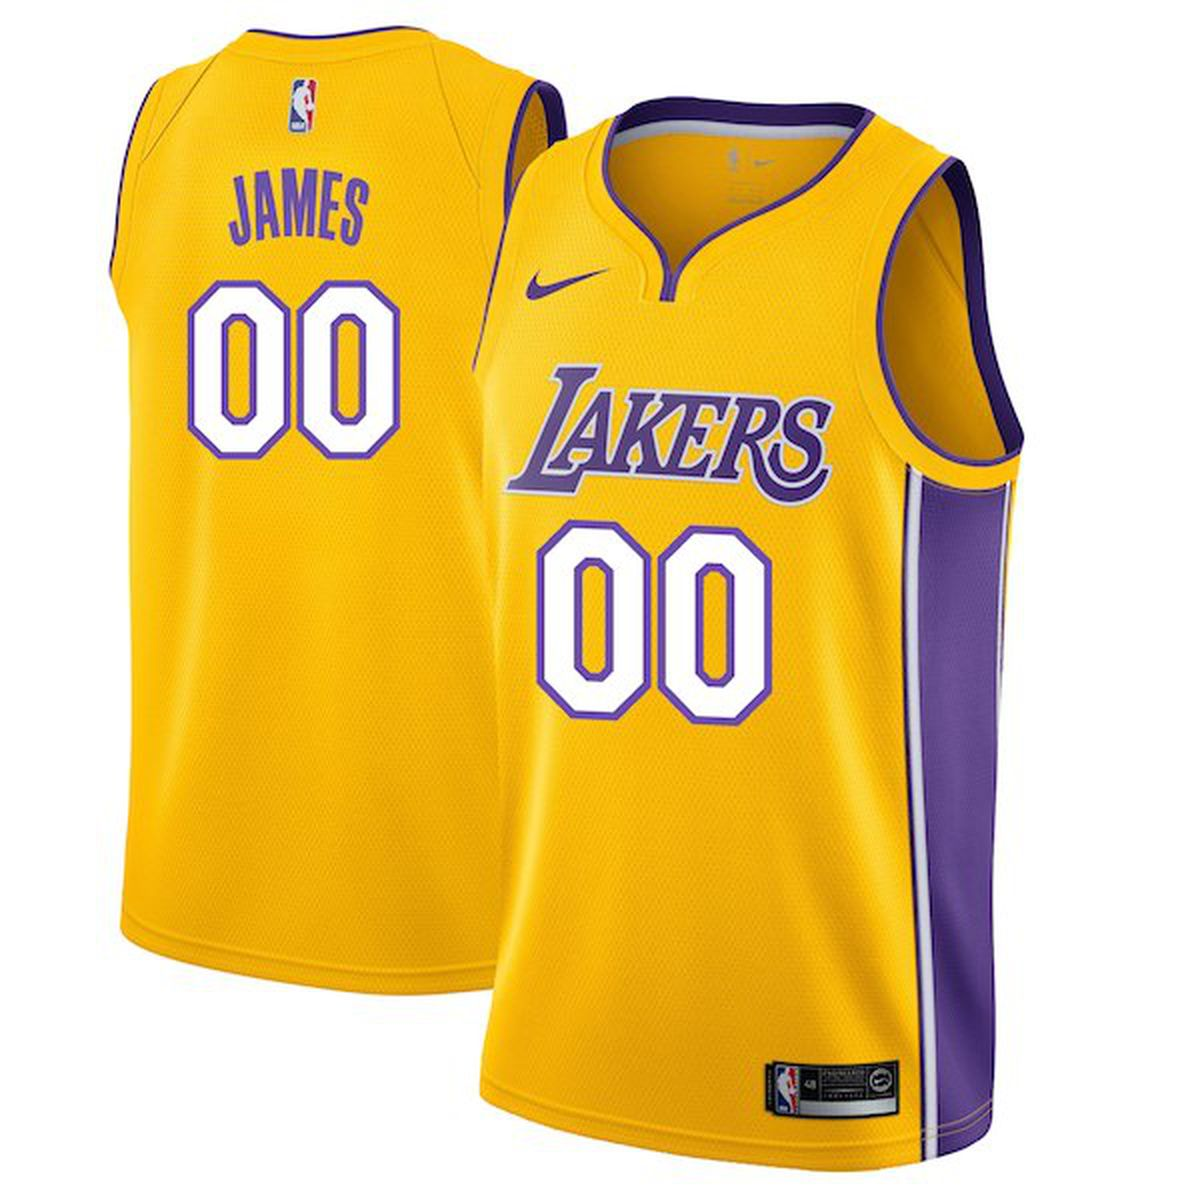 LeBron James Lakers jerseys and t-shirts now available ...